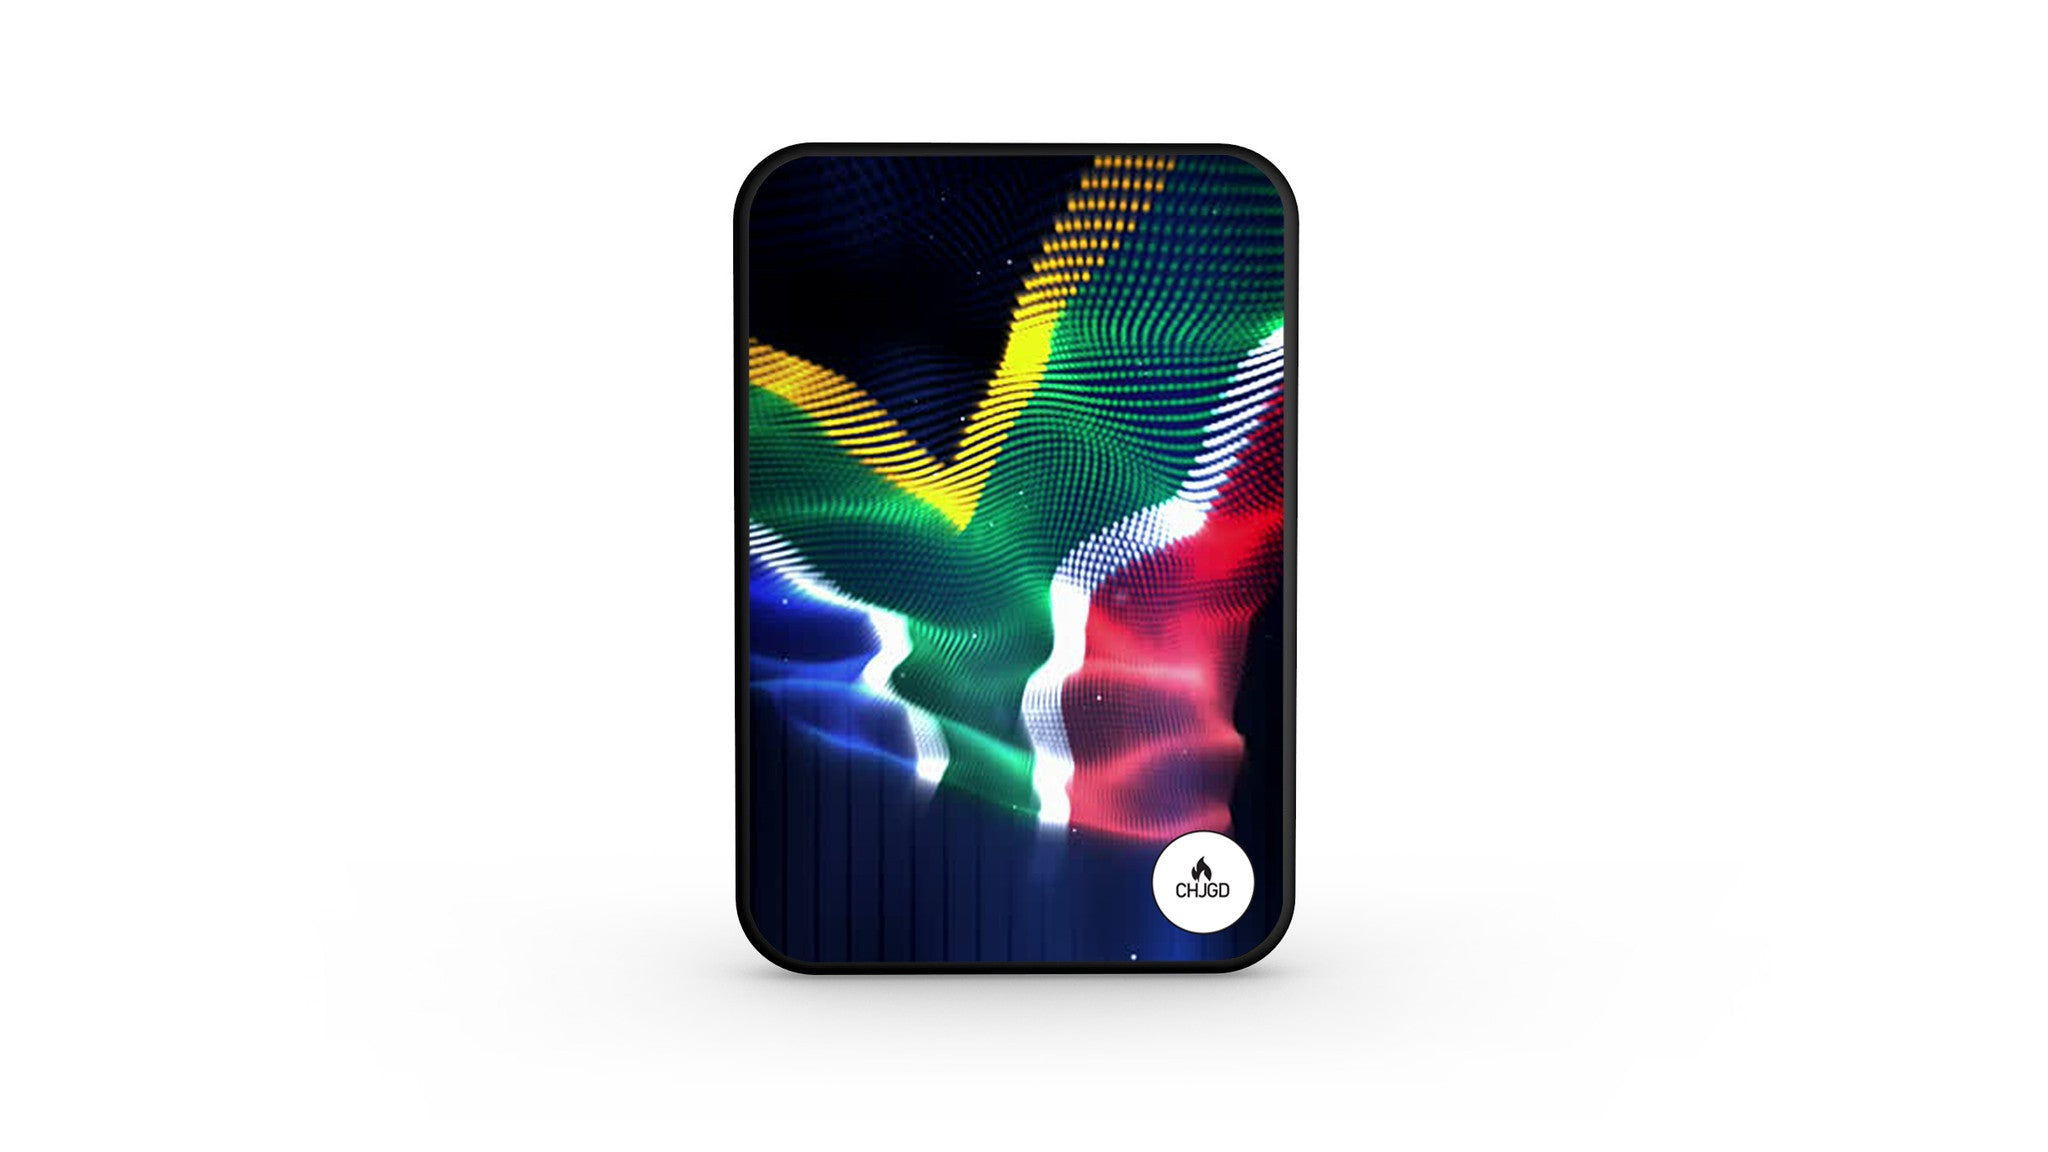 World's Smallest 10,000 mAh Power Bank - CHJGD Ultracompact (South African Flag)